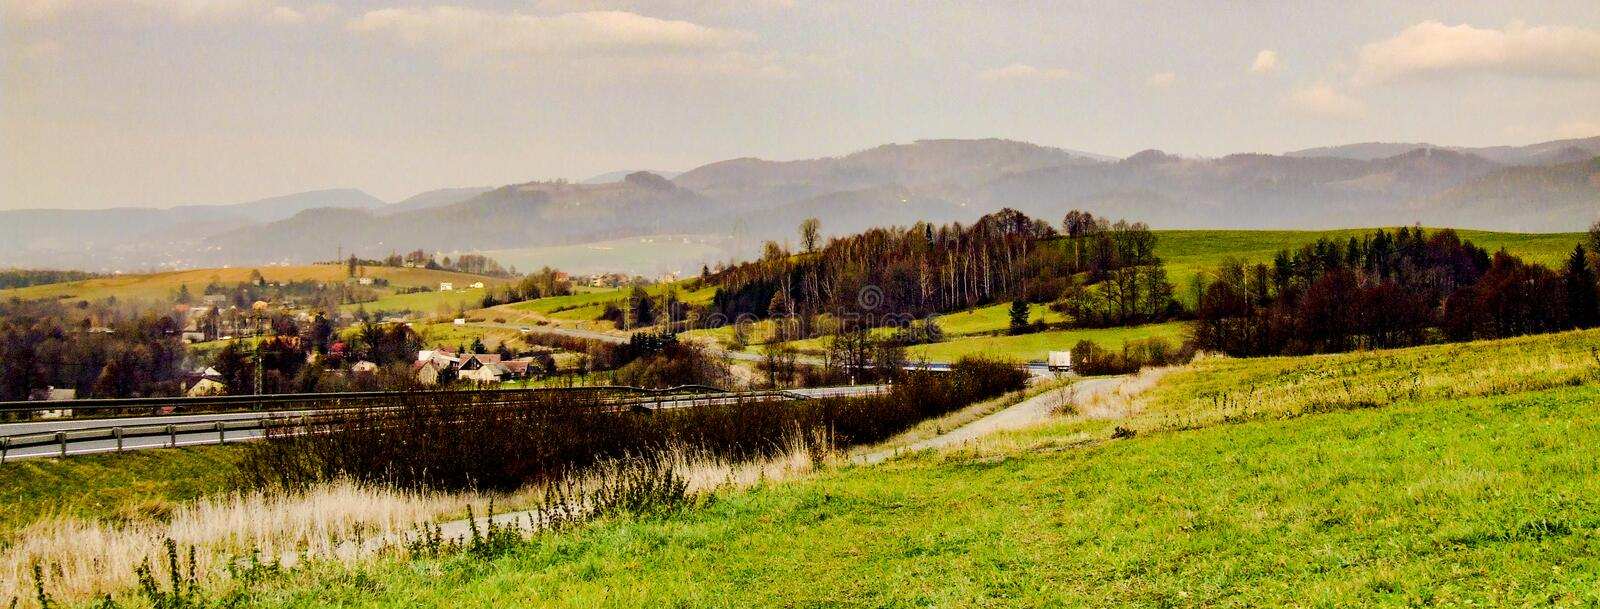 View on town of Mosty u Jablunkova and Silesian Beskids in Czechia. View on town of Mosty u Jablunkova near slovakian border and Silesian Beskids mountain range royalty free stock images